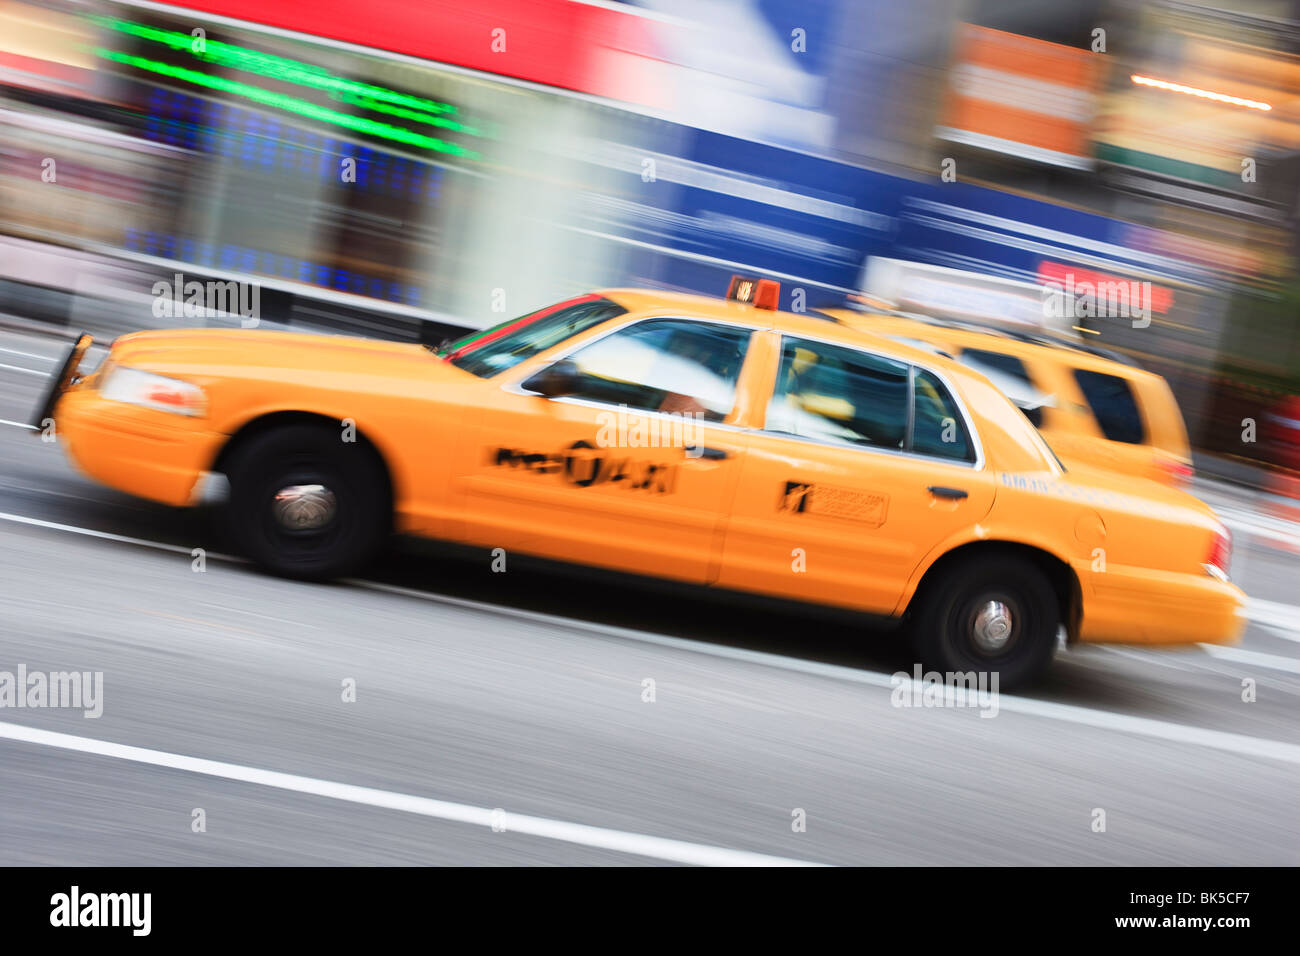 Taxi, Times Square, Manhattan, New York City, New York, United States of America, North America - Stock Image